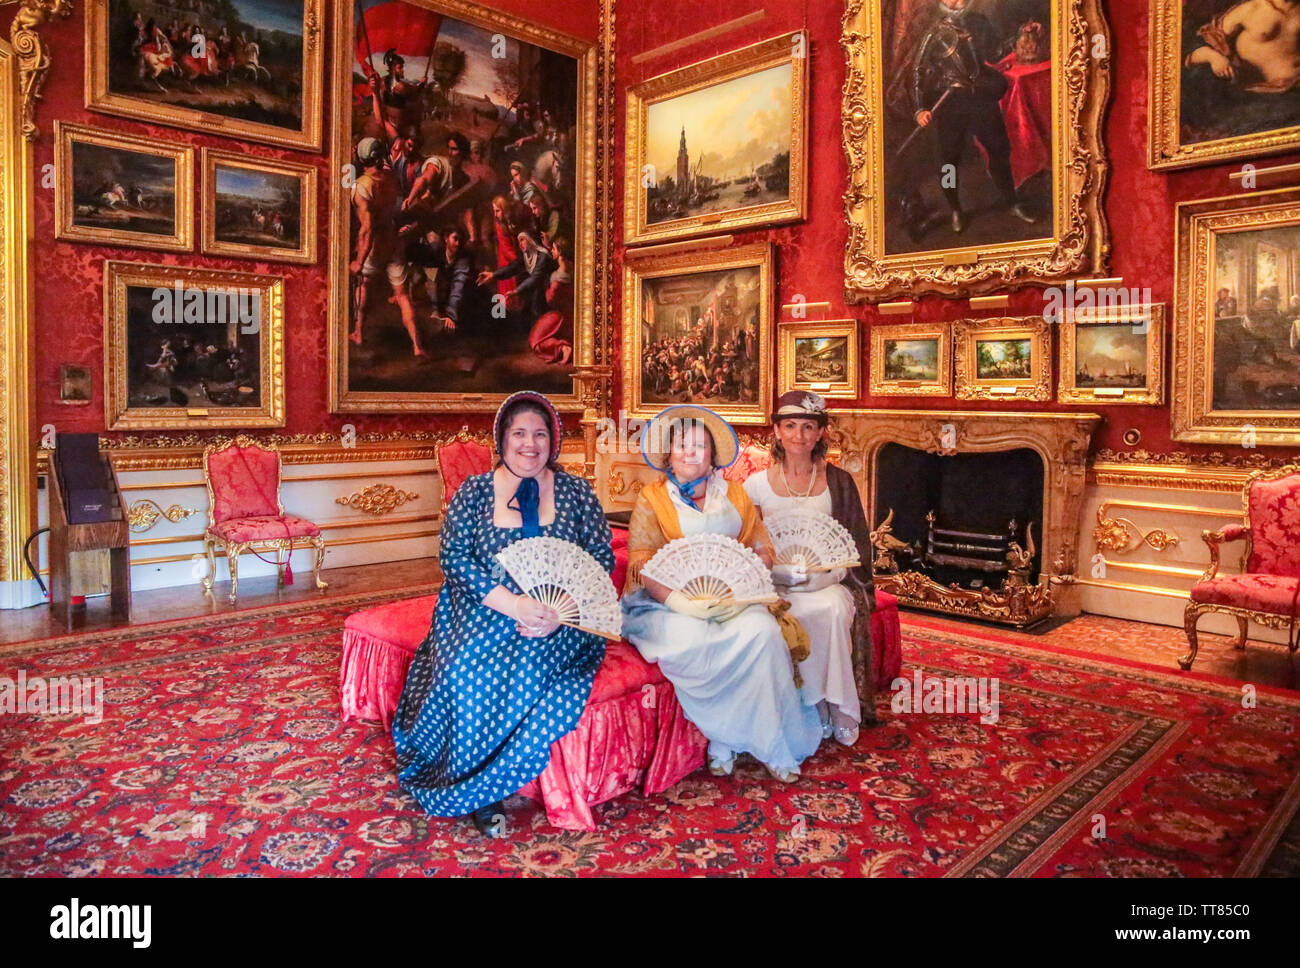 London, UK. 15 June 2019.Three Actresses in period costum in  The Waterloo Gallery is the final element of Benjamin Dean Wyatt's work on Apsley House completed in 1830. The style is French revival and has been described as after Louis XIV, Louis XV or Louis XVI. In reality it is an eclectic mix which was a hallmark of Wyatt's work. The gallery is double height; there is no second floor or attic in this part of the house. When Wyatt's designs for York (now Lancaster) House were delayed in 1826 they were re-worked for Apsley House.Paul Quezada-Neiman/Alamy Live News Credit: Paul Quezada-Neiman/ - Stock Image